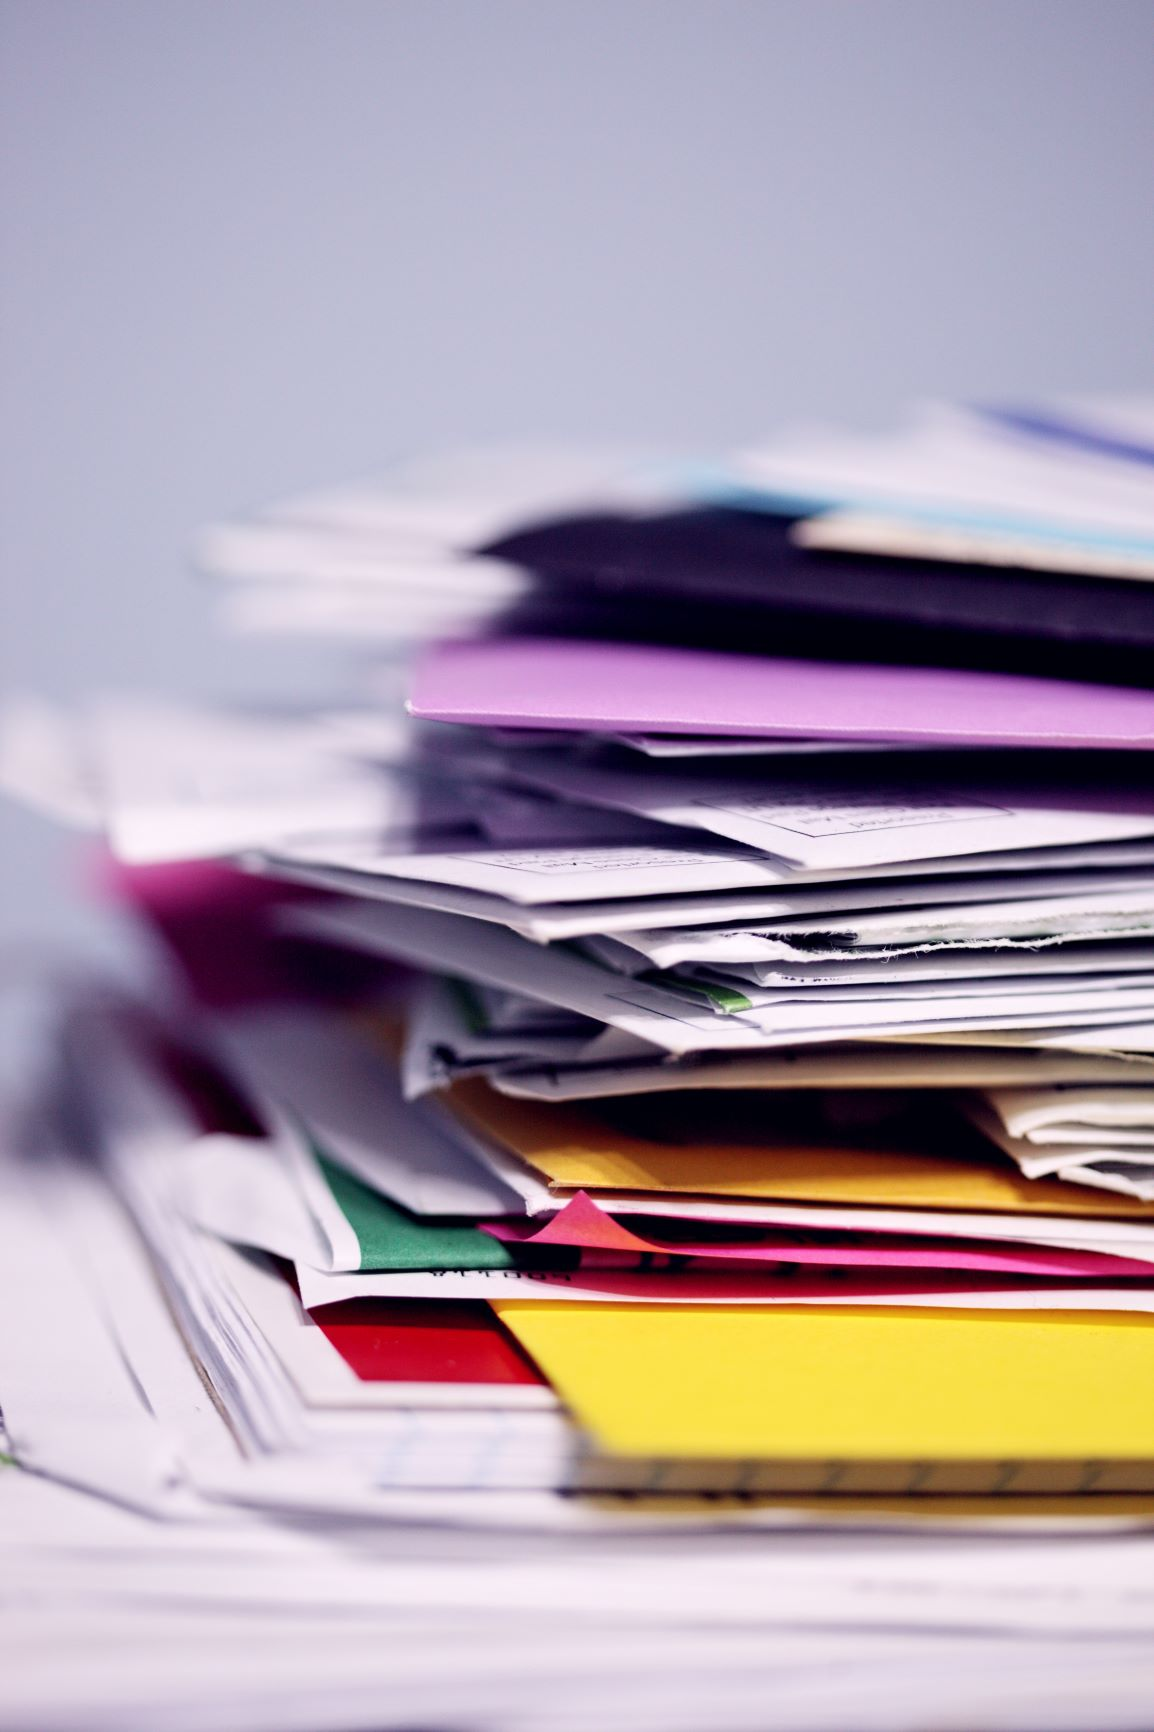 Pile of papers on a white desk